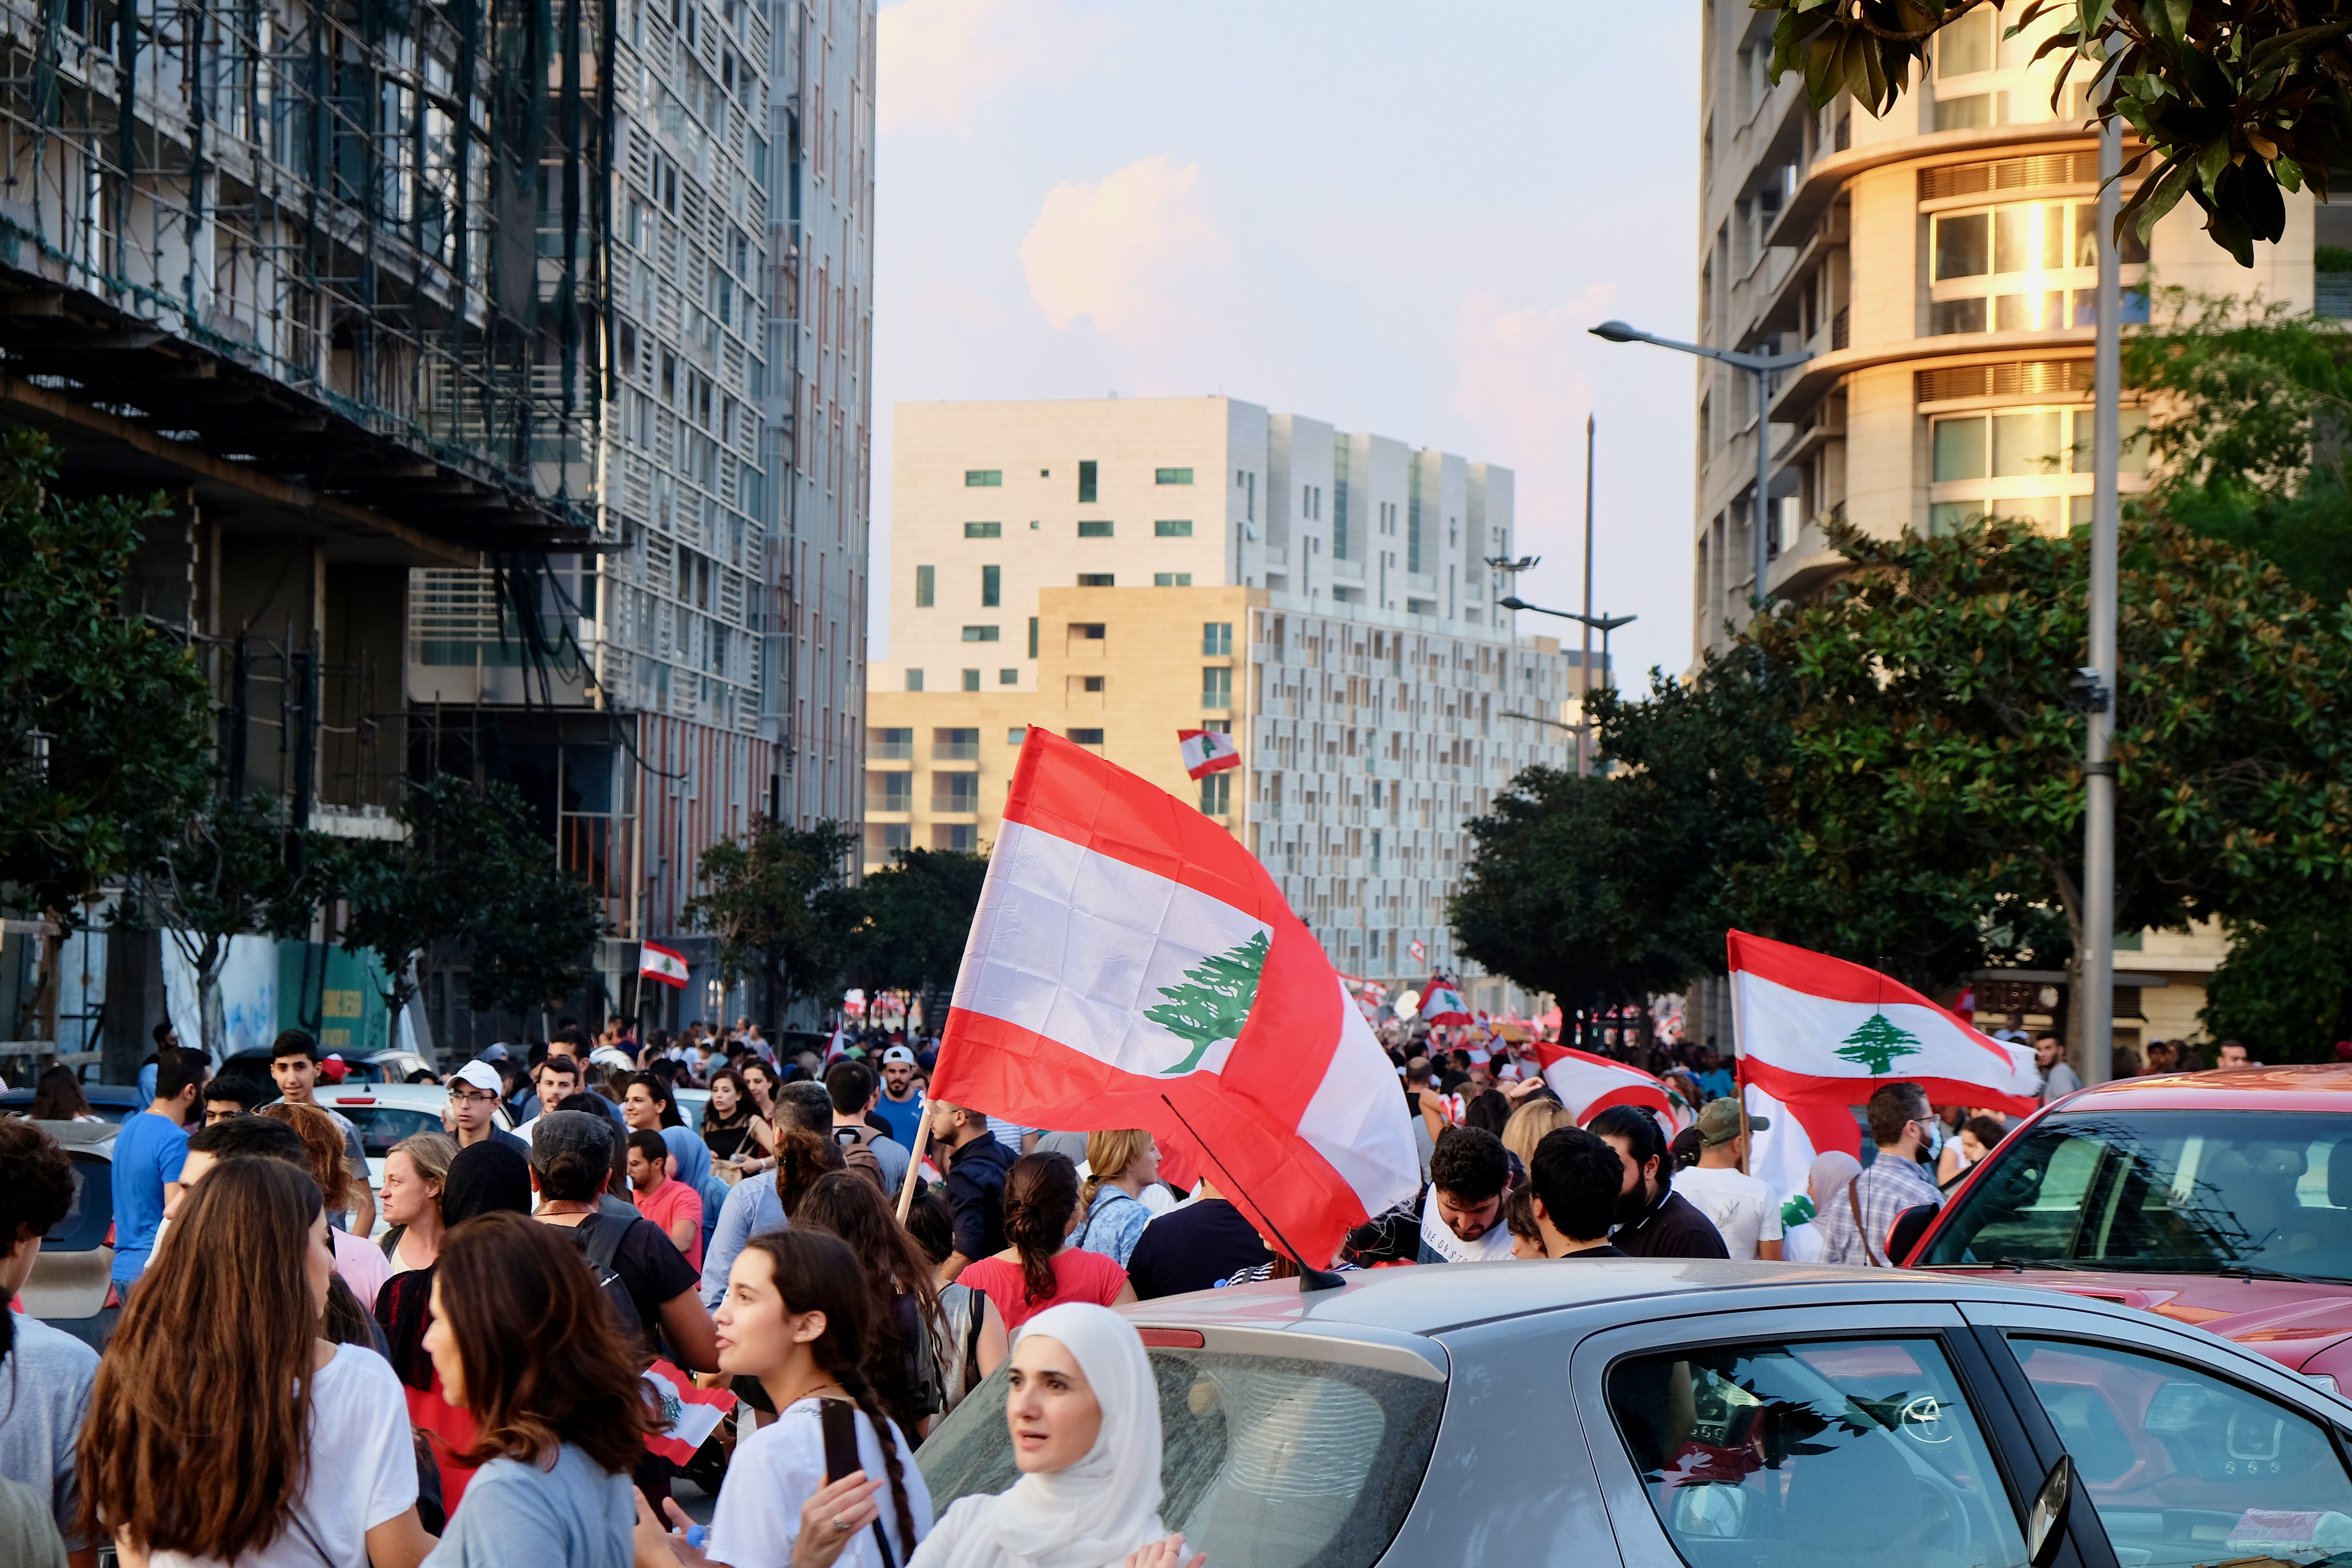 Demonstrators head to downtown Beirut.